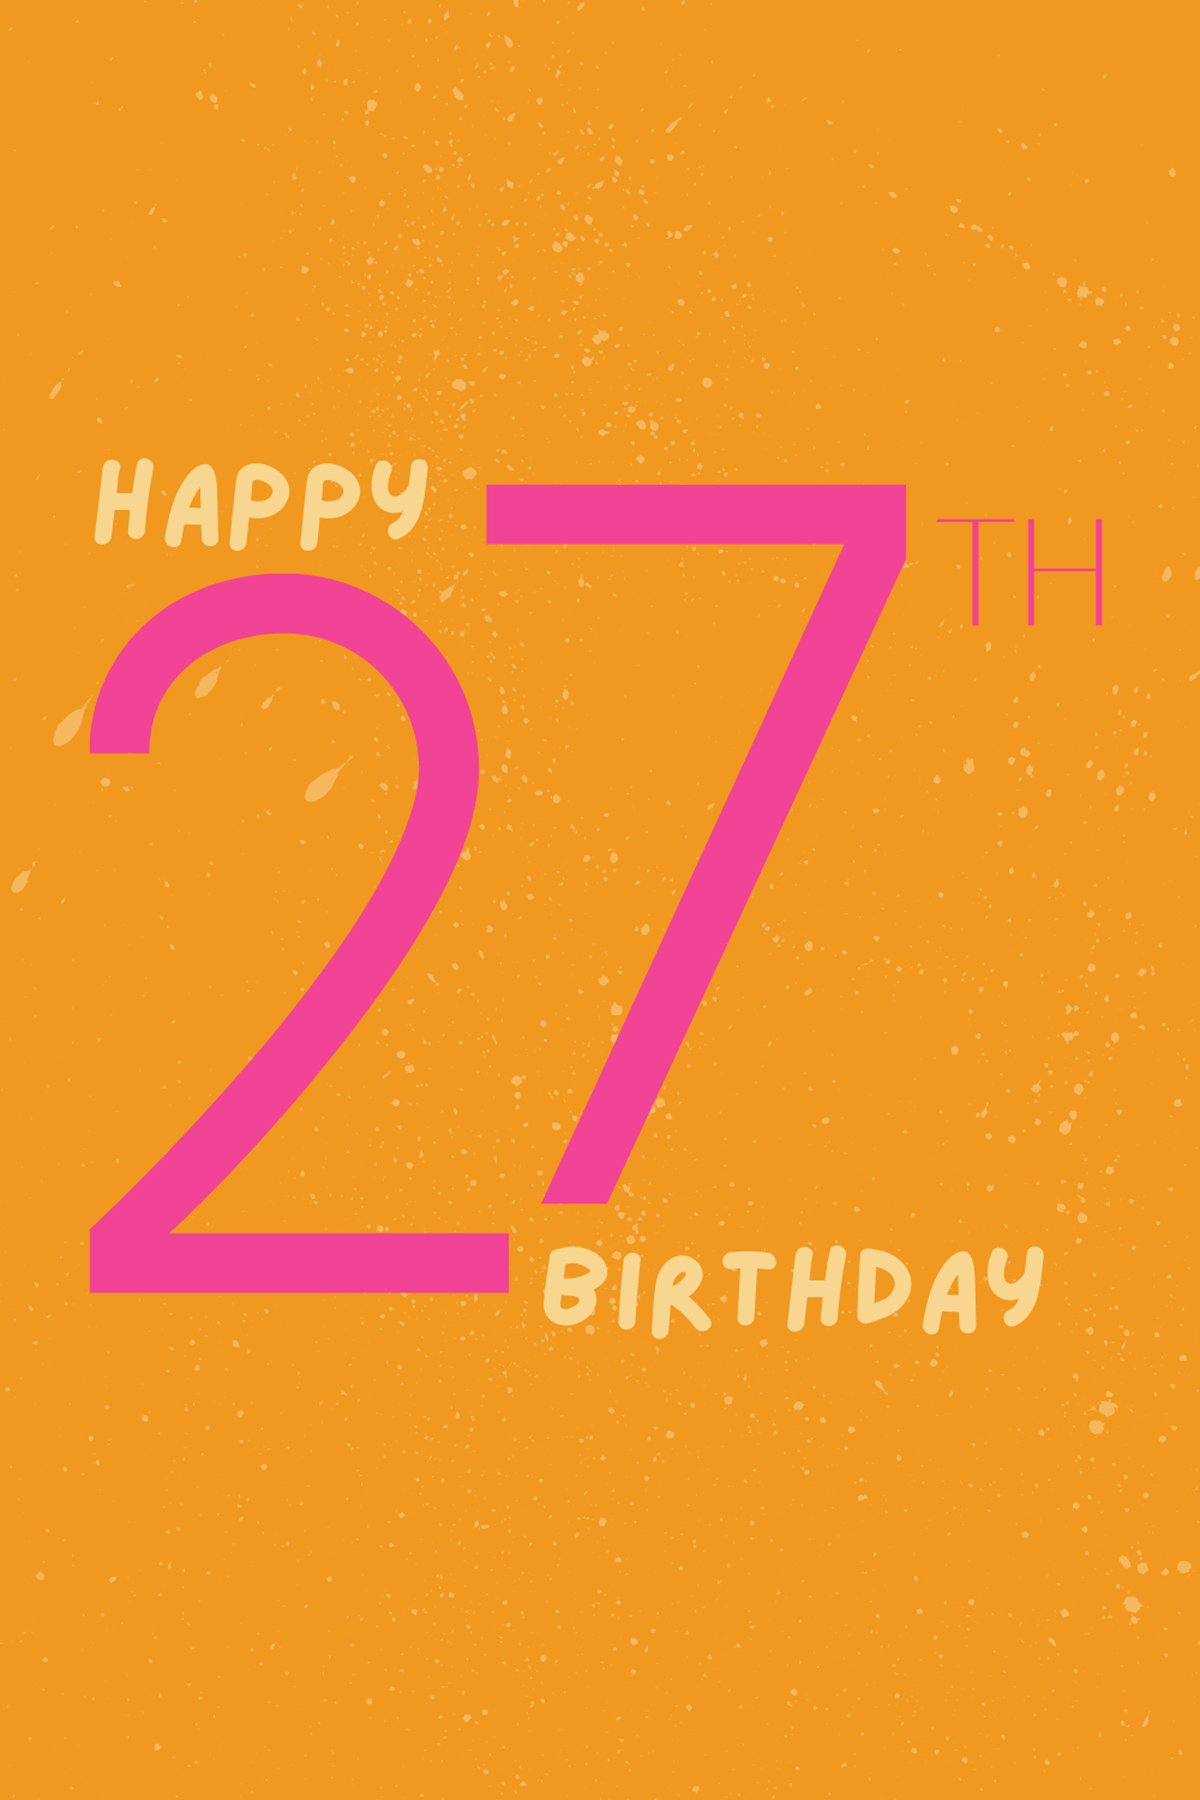 Birthday wishes for 27 Year Old